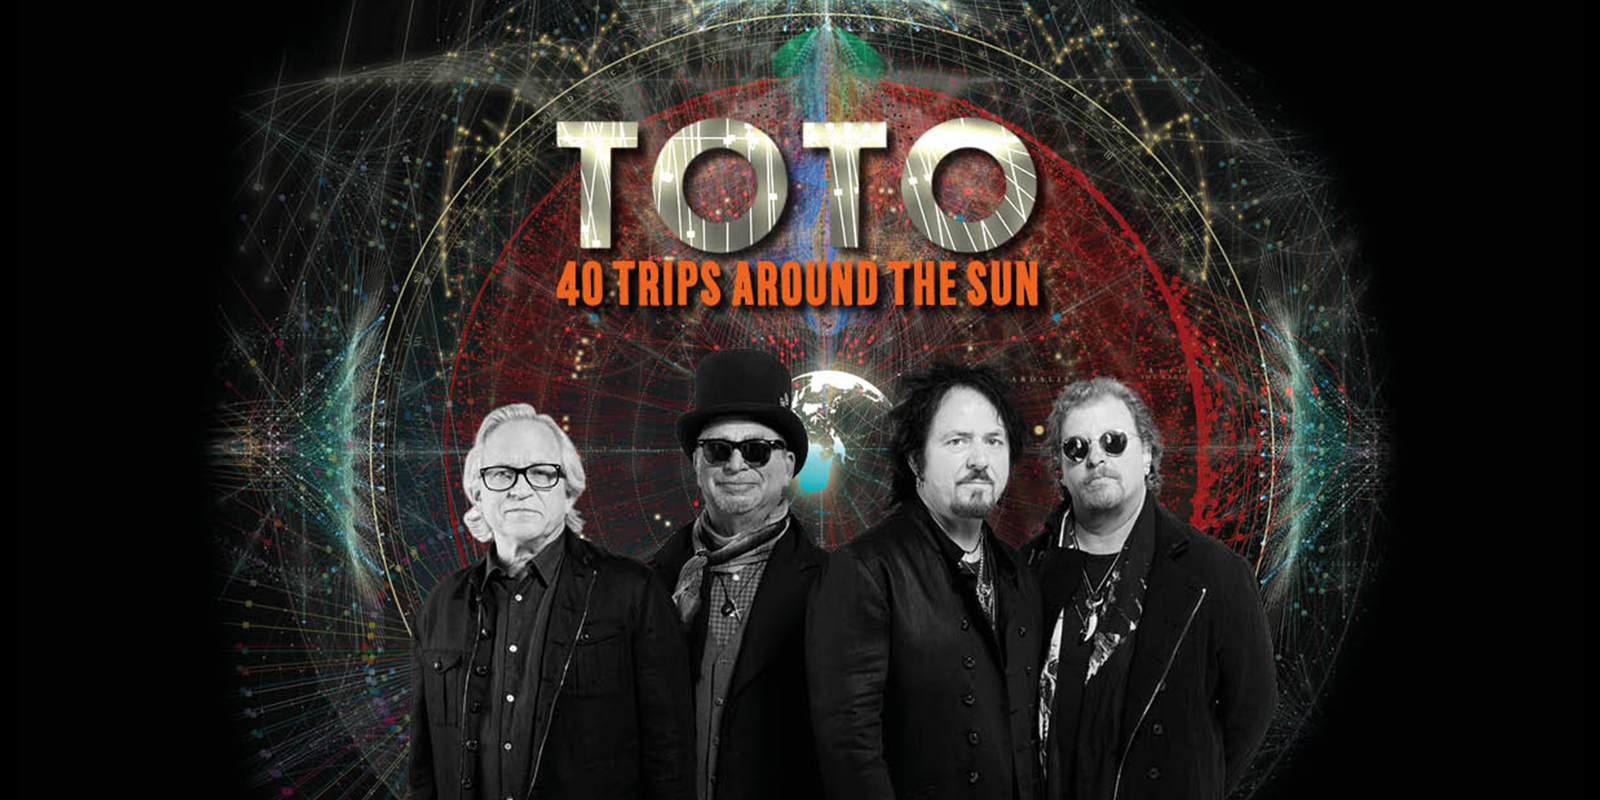 TOTO - 40 Trips Around The Sun